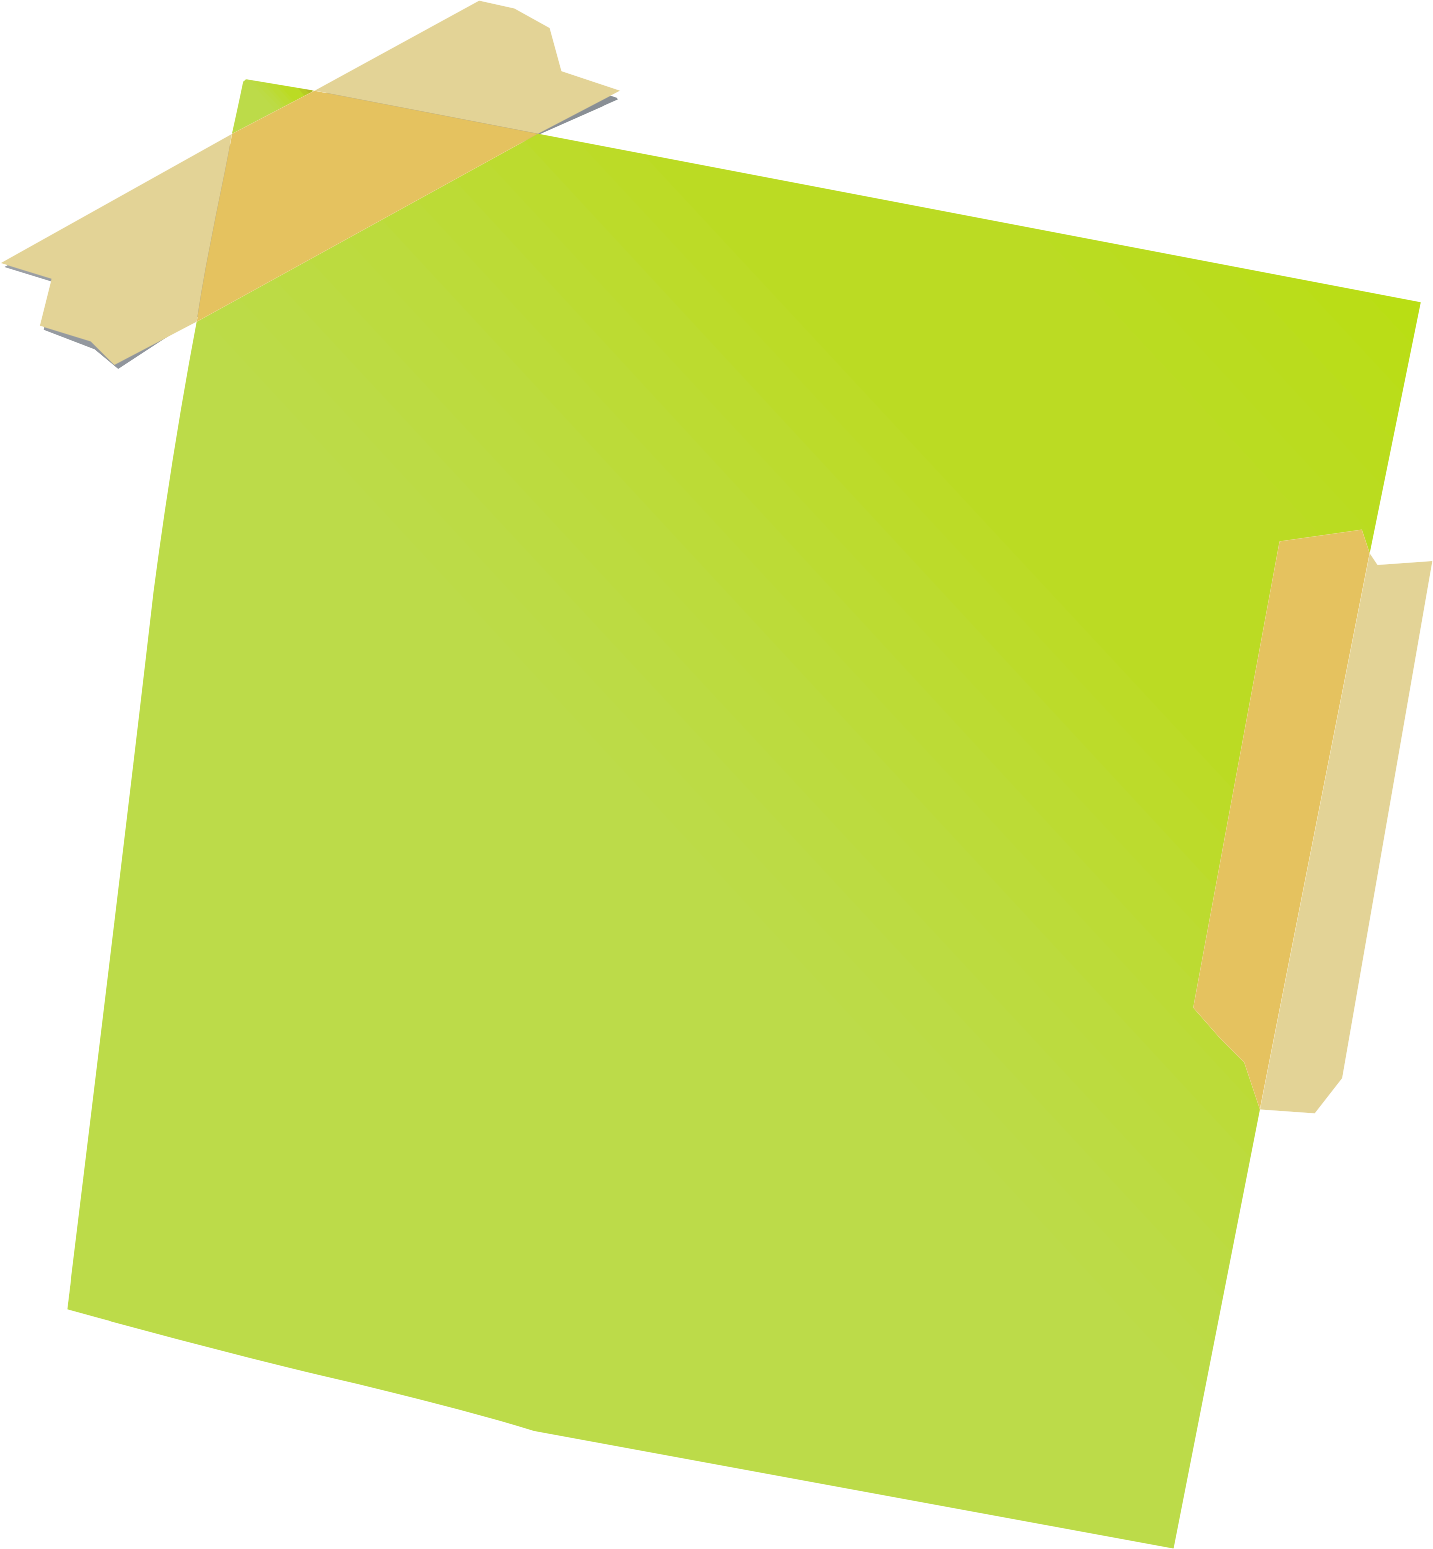 Sticy notes png image. Paper clipart sticky note